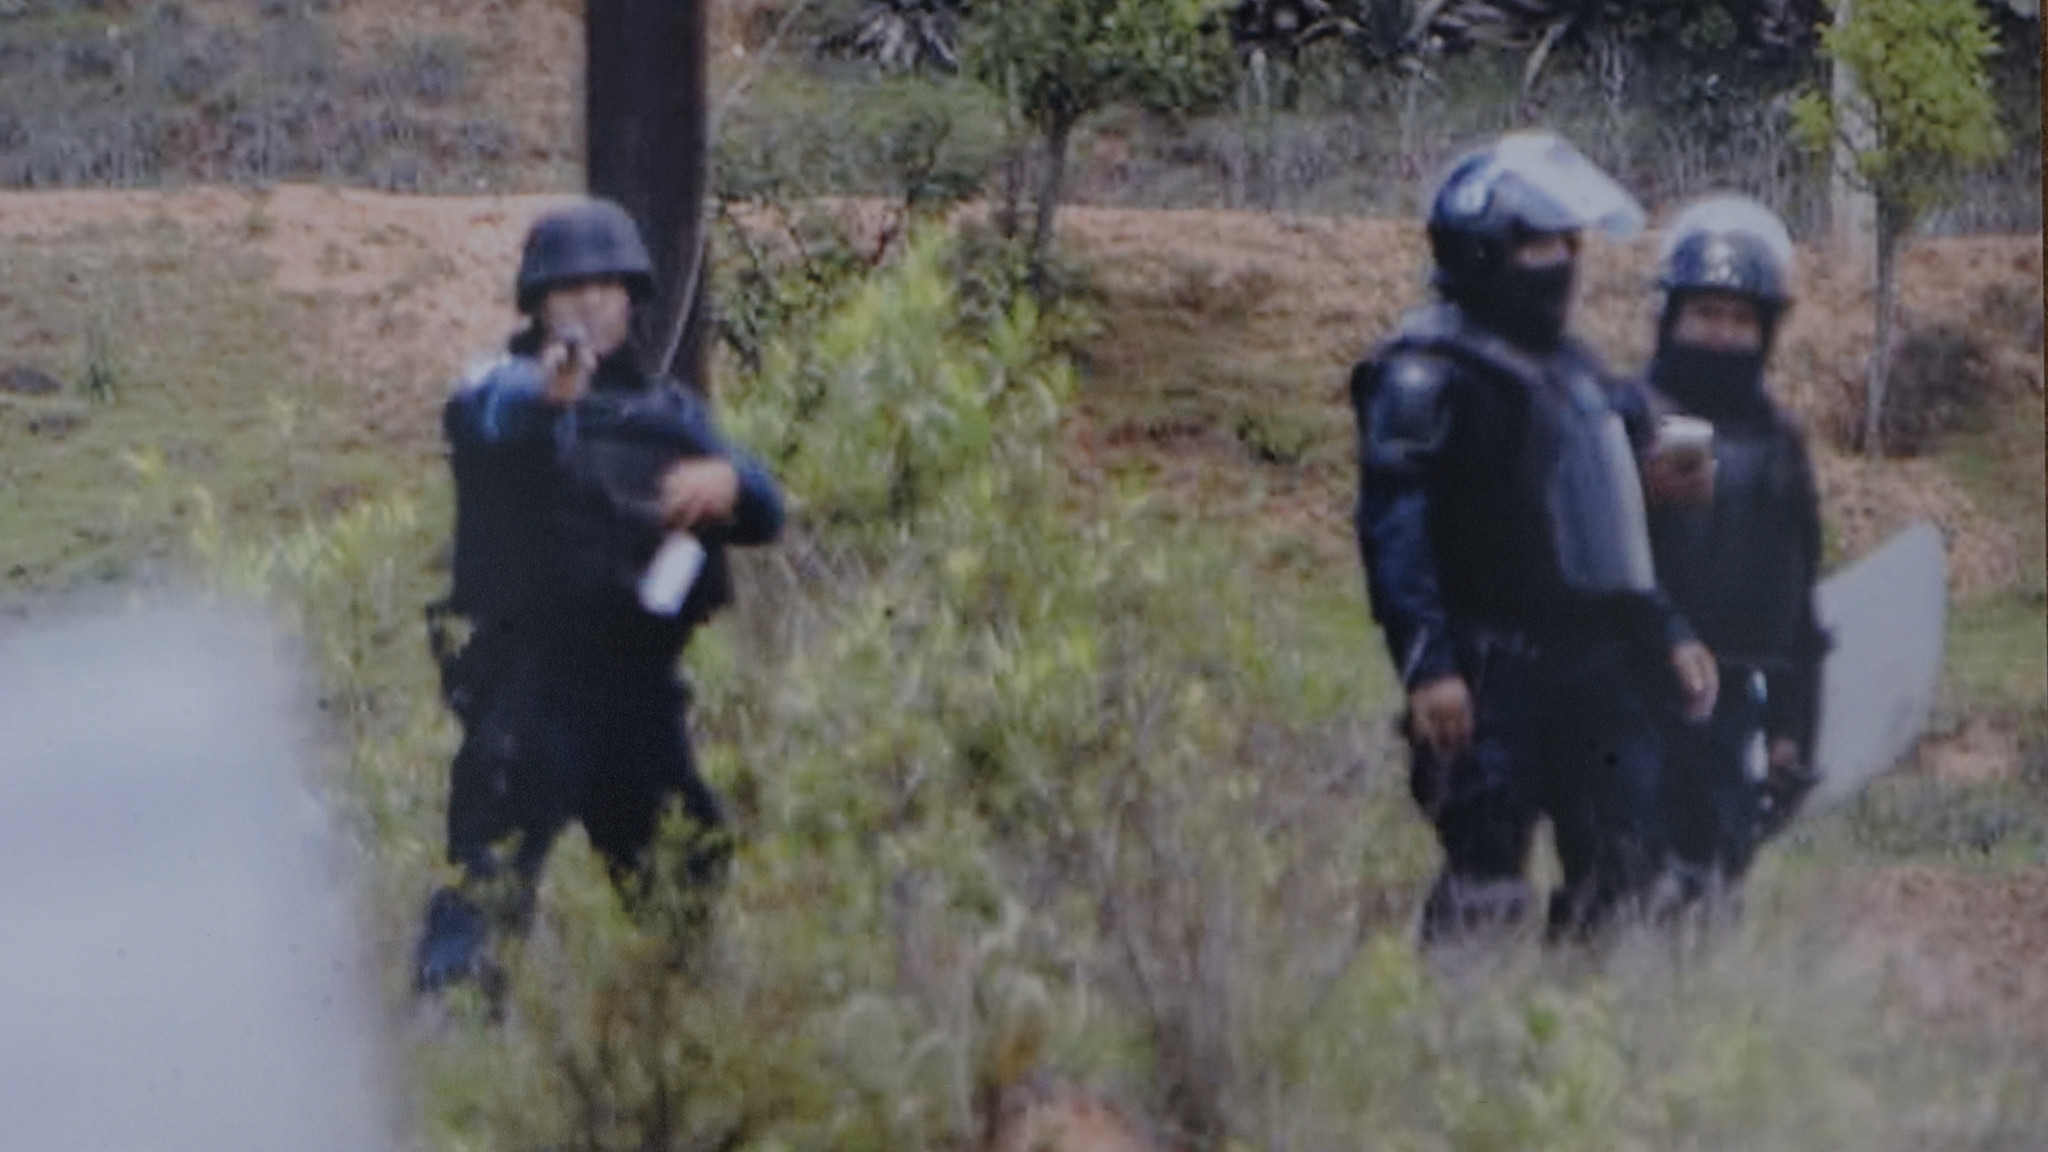 A photo found on the cellphone of Jesus Cadena Sanchez shows a federal policeman pointing his weapon during the unrest in Nochixtlan on June 19.